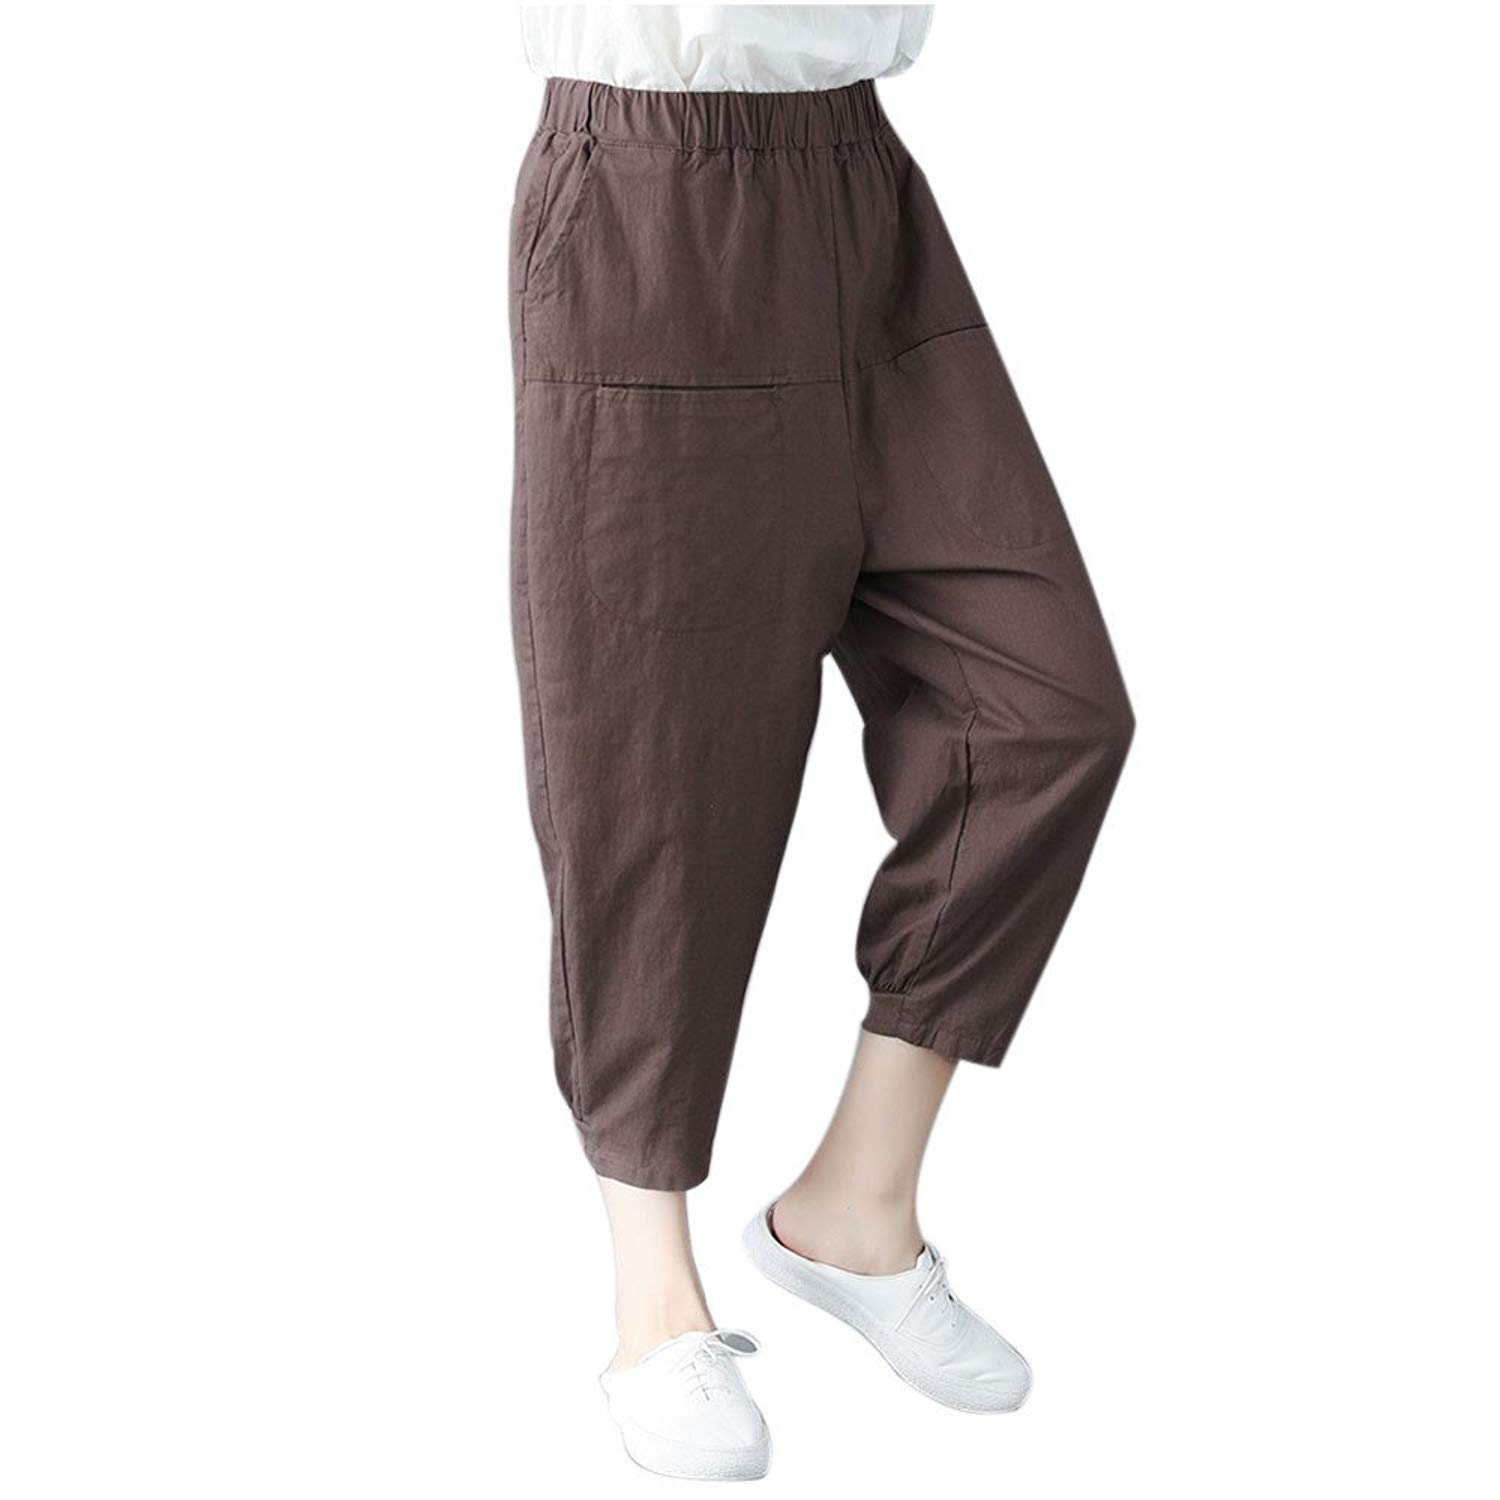 f8f01aaceac8 Get Quotations · FarJing Pants for Womens,Clearance Sale Women Solid Color  Pocket Elastic Waist Linen Pants Trousers